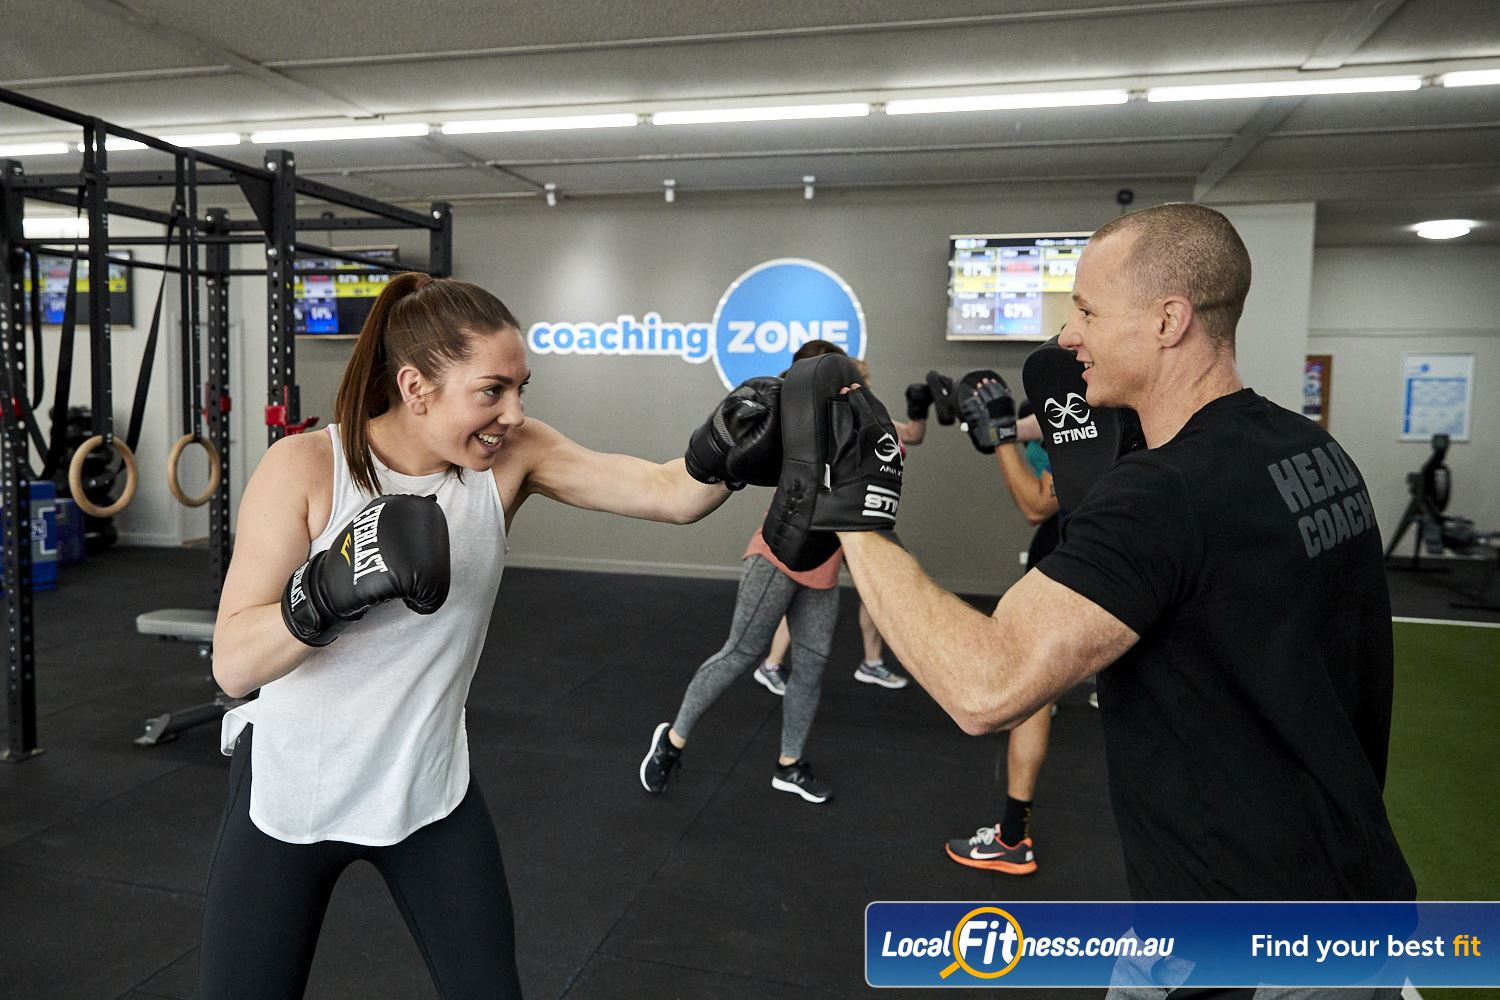 Coaching Zone Near Upper Ferntree Gully 8 different workouts inc. Boxing, HIIT, Strength, Adrenaline and more.